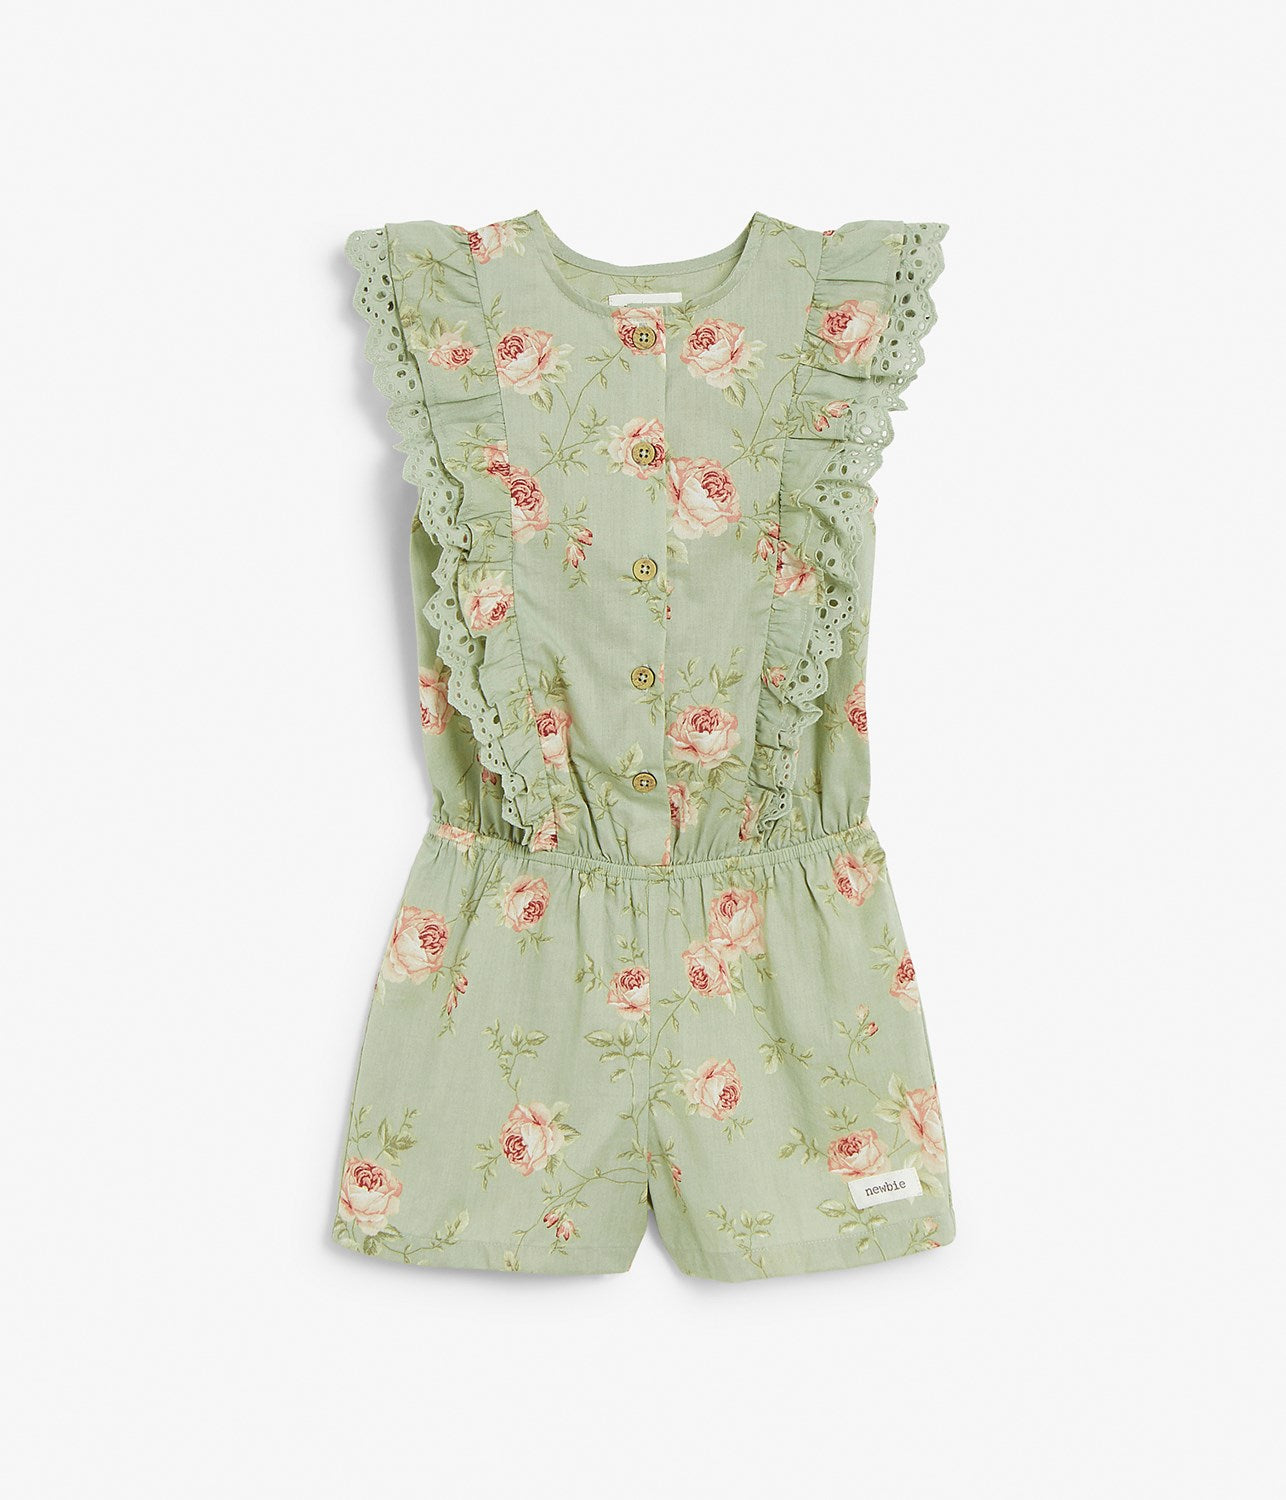 Kids green & floral print playsuit